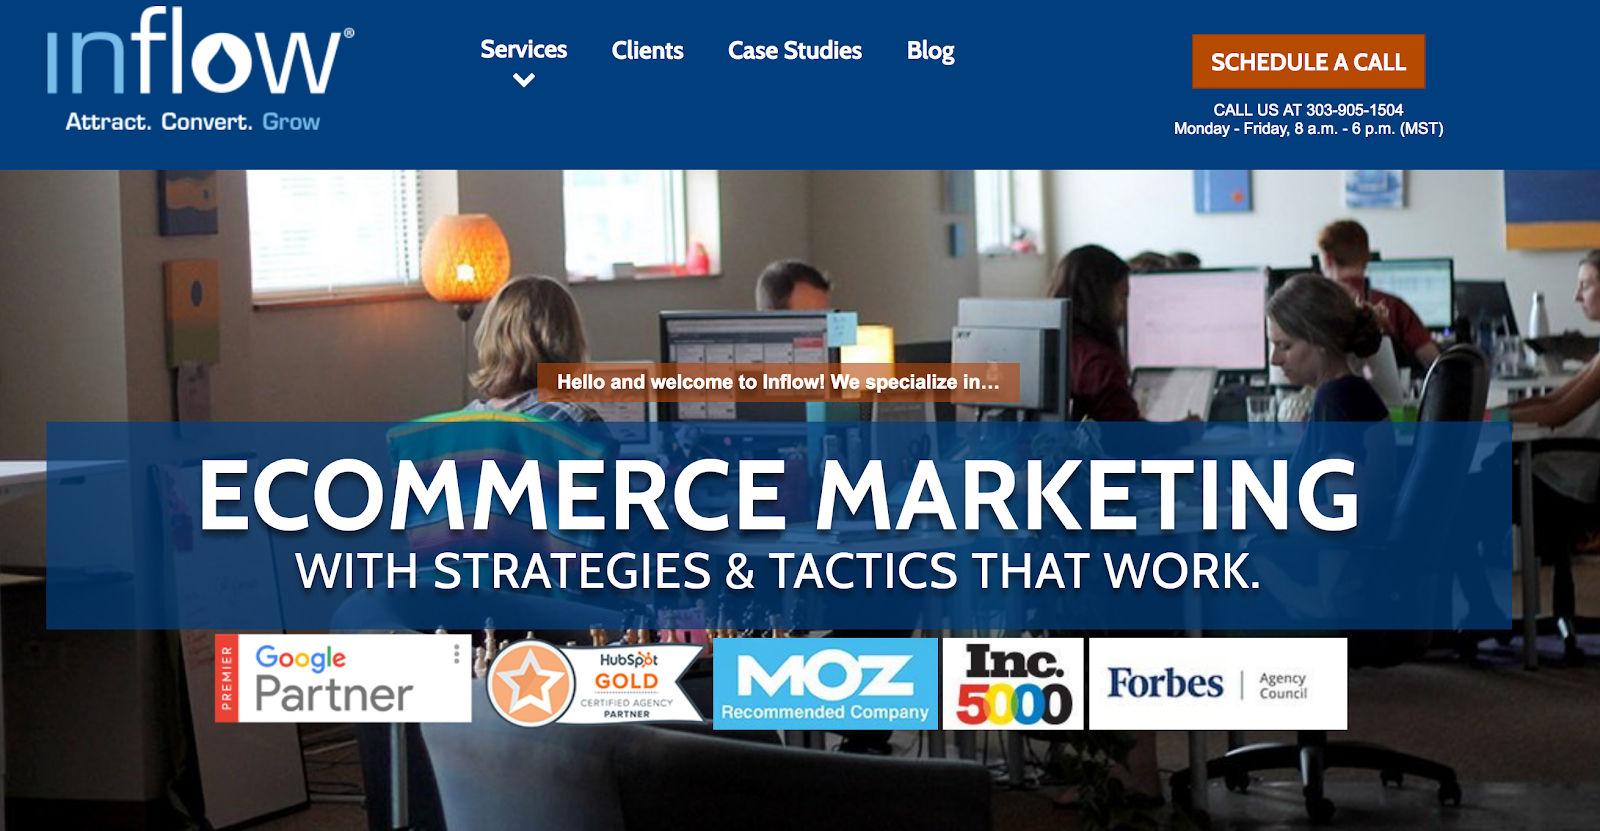 Award Winning eCommerce Marketing Agency Inflow